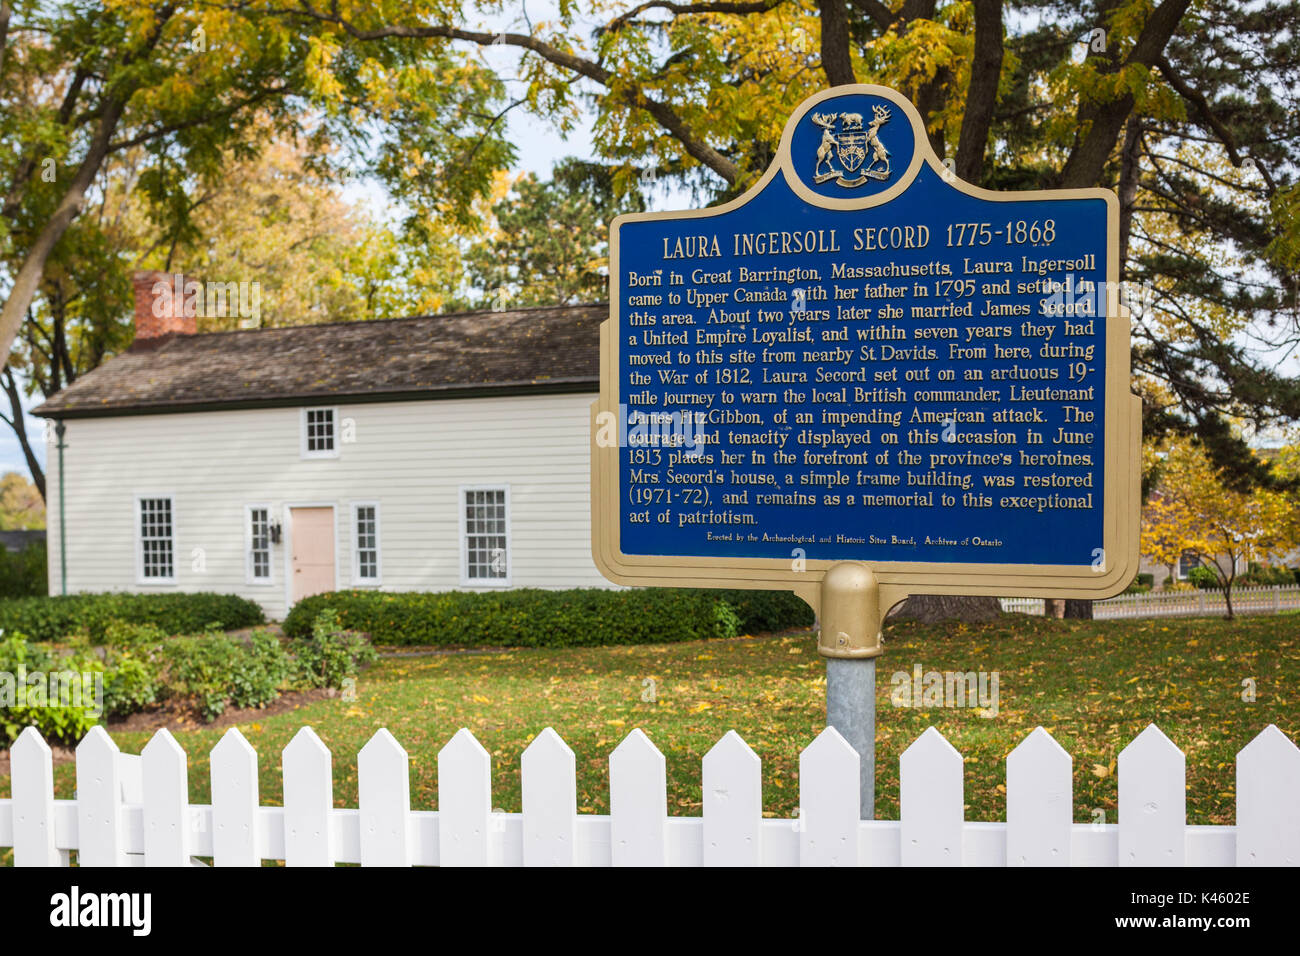 Canada, Ontario, Queenston, Laura Secord Homestead, home of loyalist her of the War of 1812, Laura Secord - Stock Image